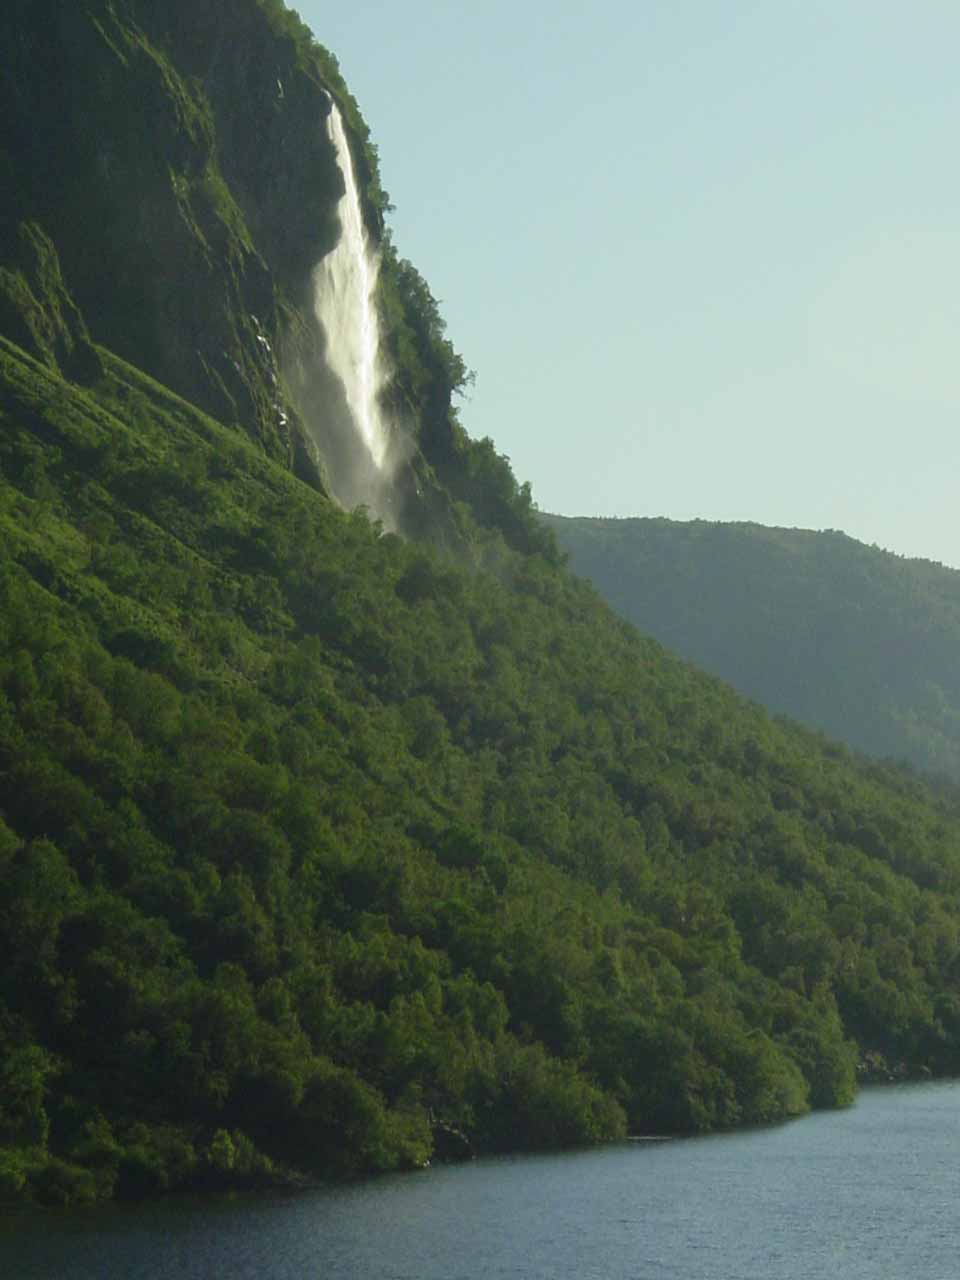 Closer look at the attractive lakeside waterfall I'm calling Drivafossen